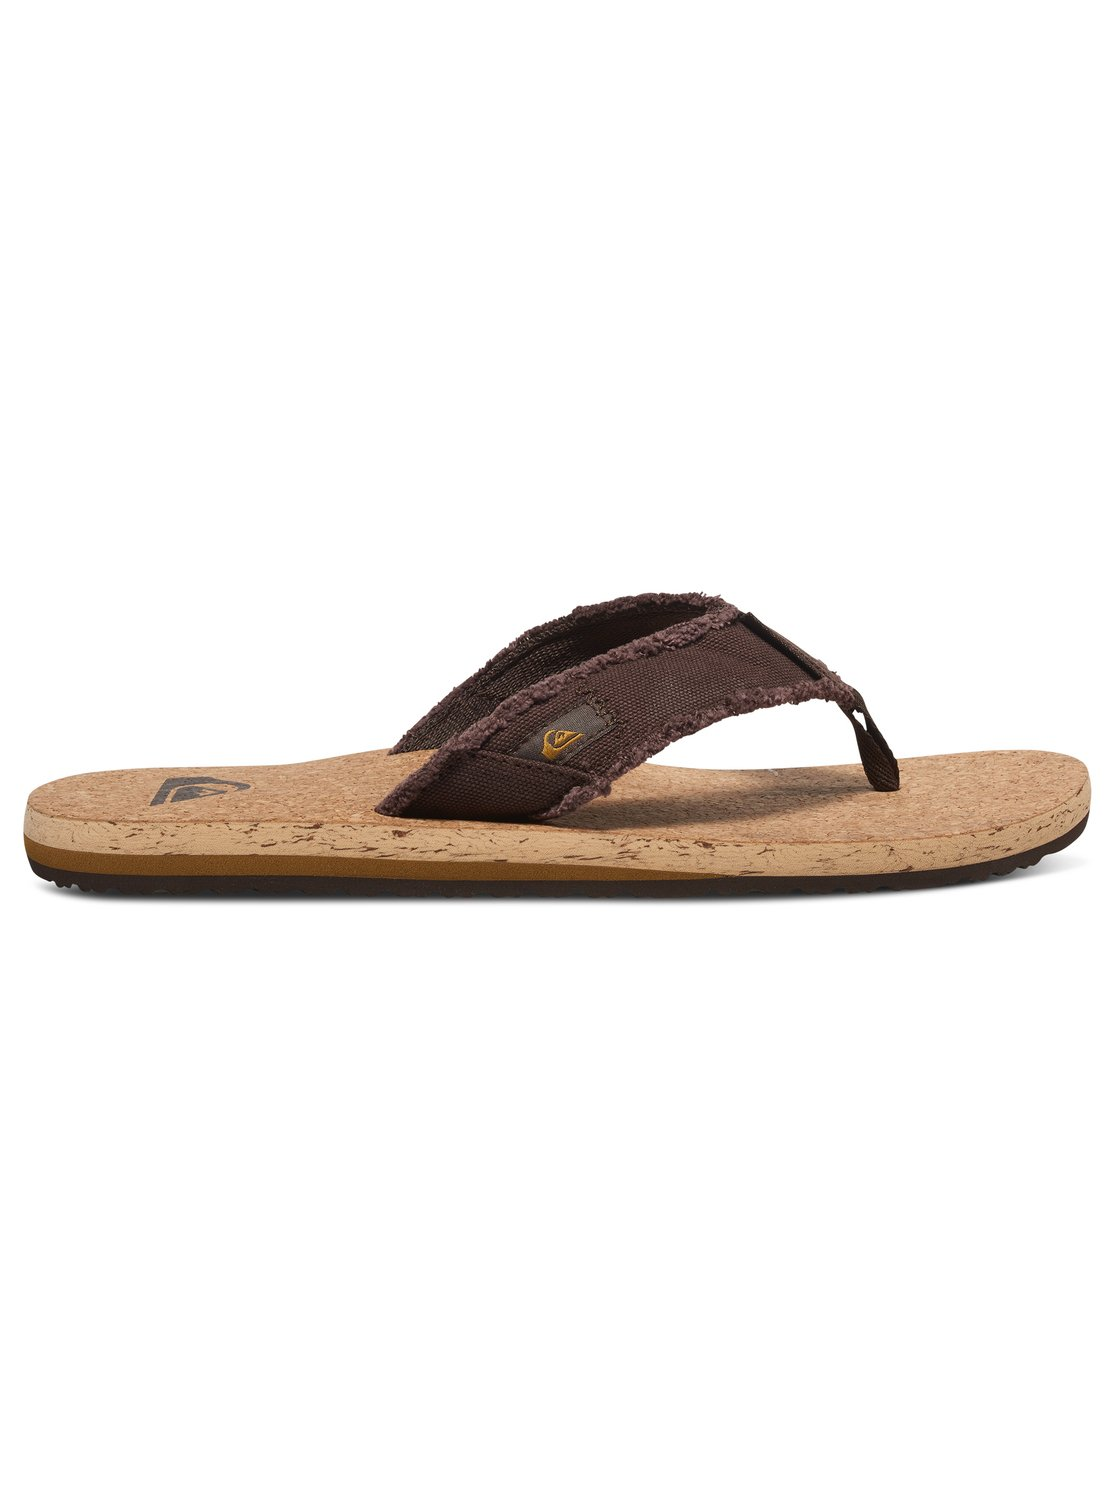 Tongs Quiksilver Monkey Abyss Cork F5ff2P8